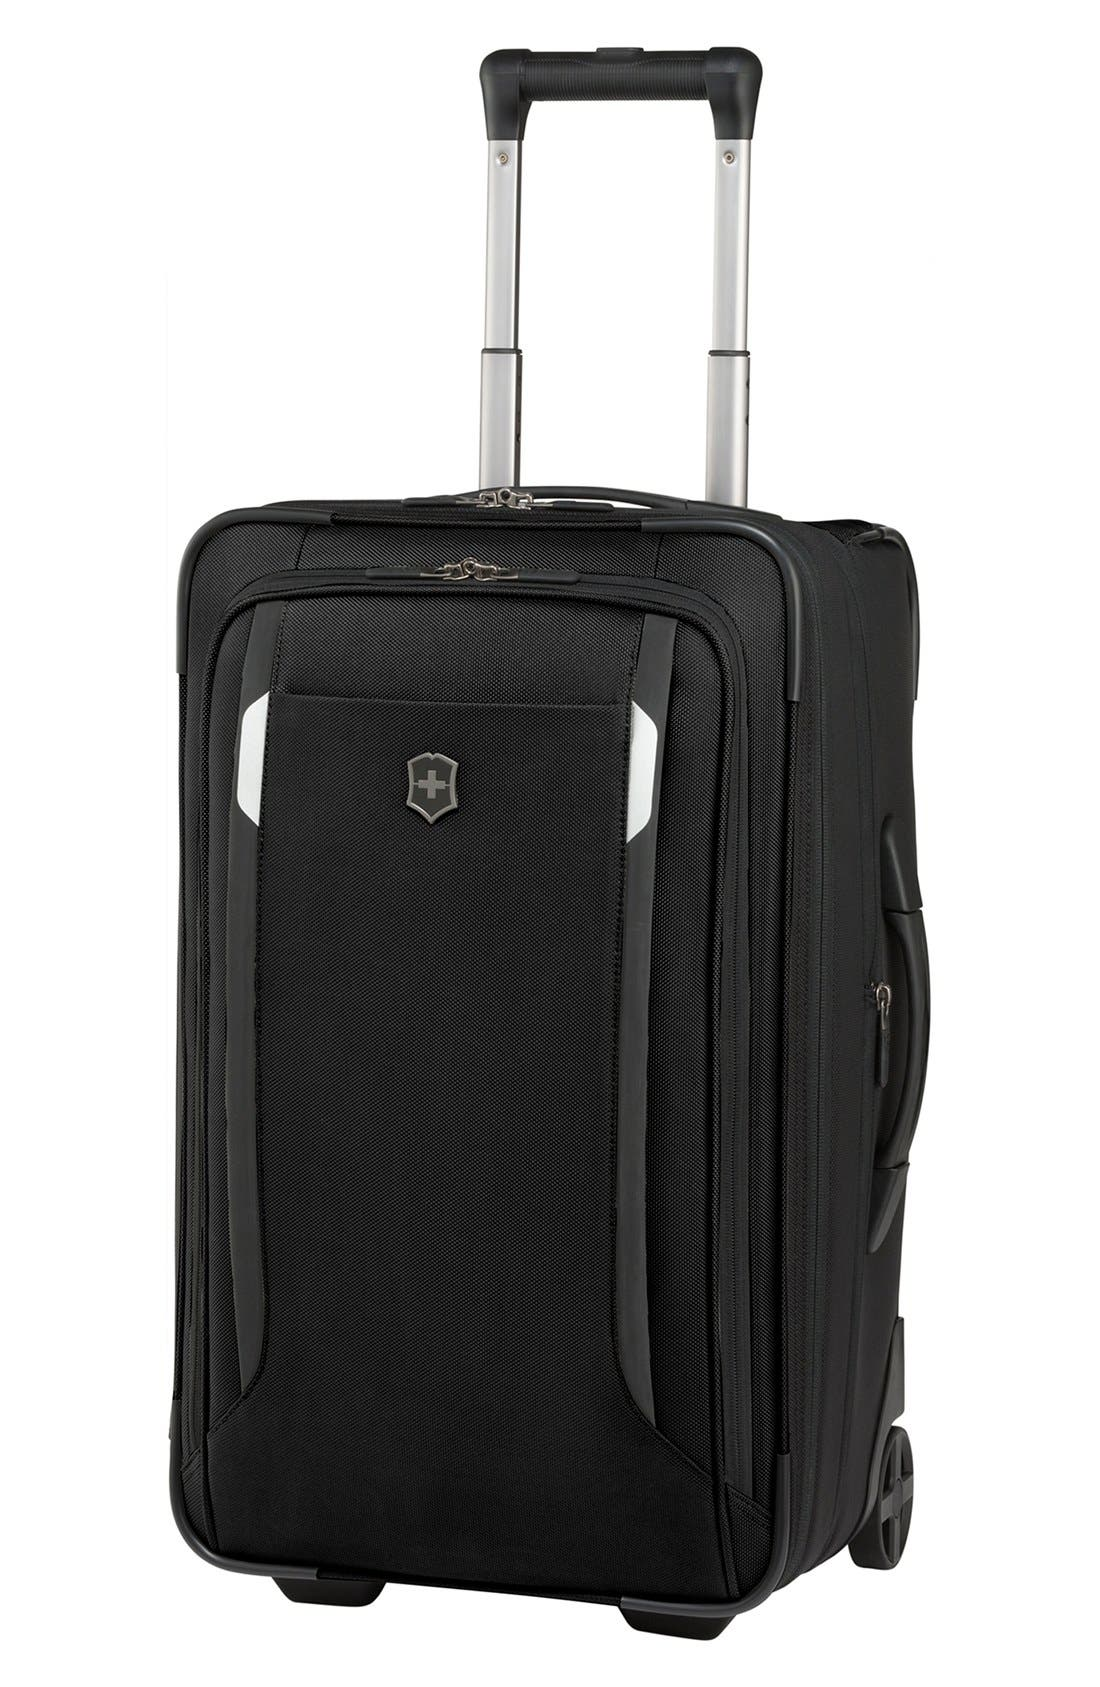 Main Image - Victorinox Swiss Army® WT 5.0 Wheeled 22-Inch Carry-On